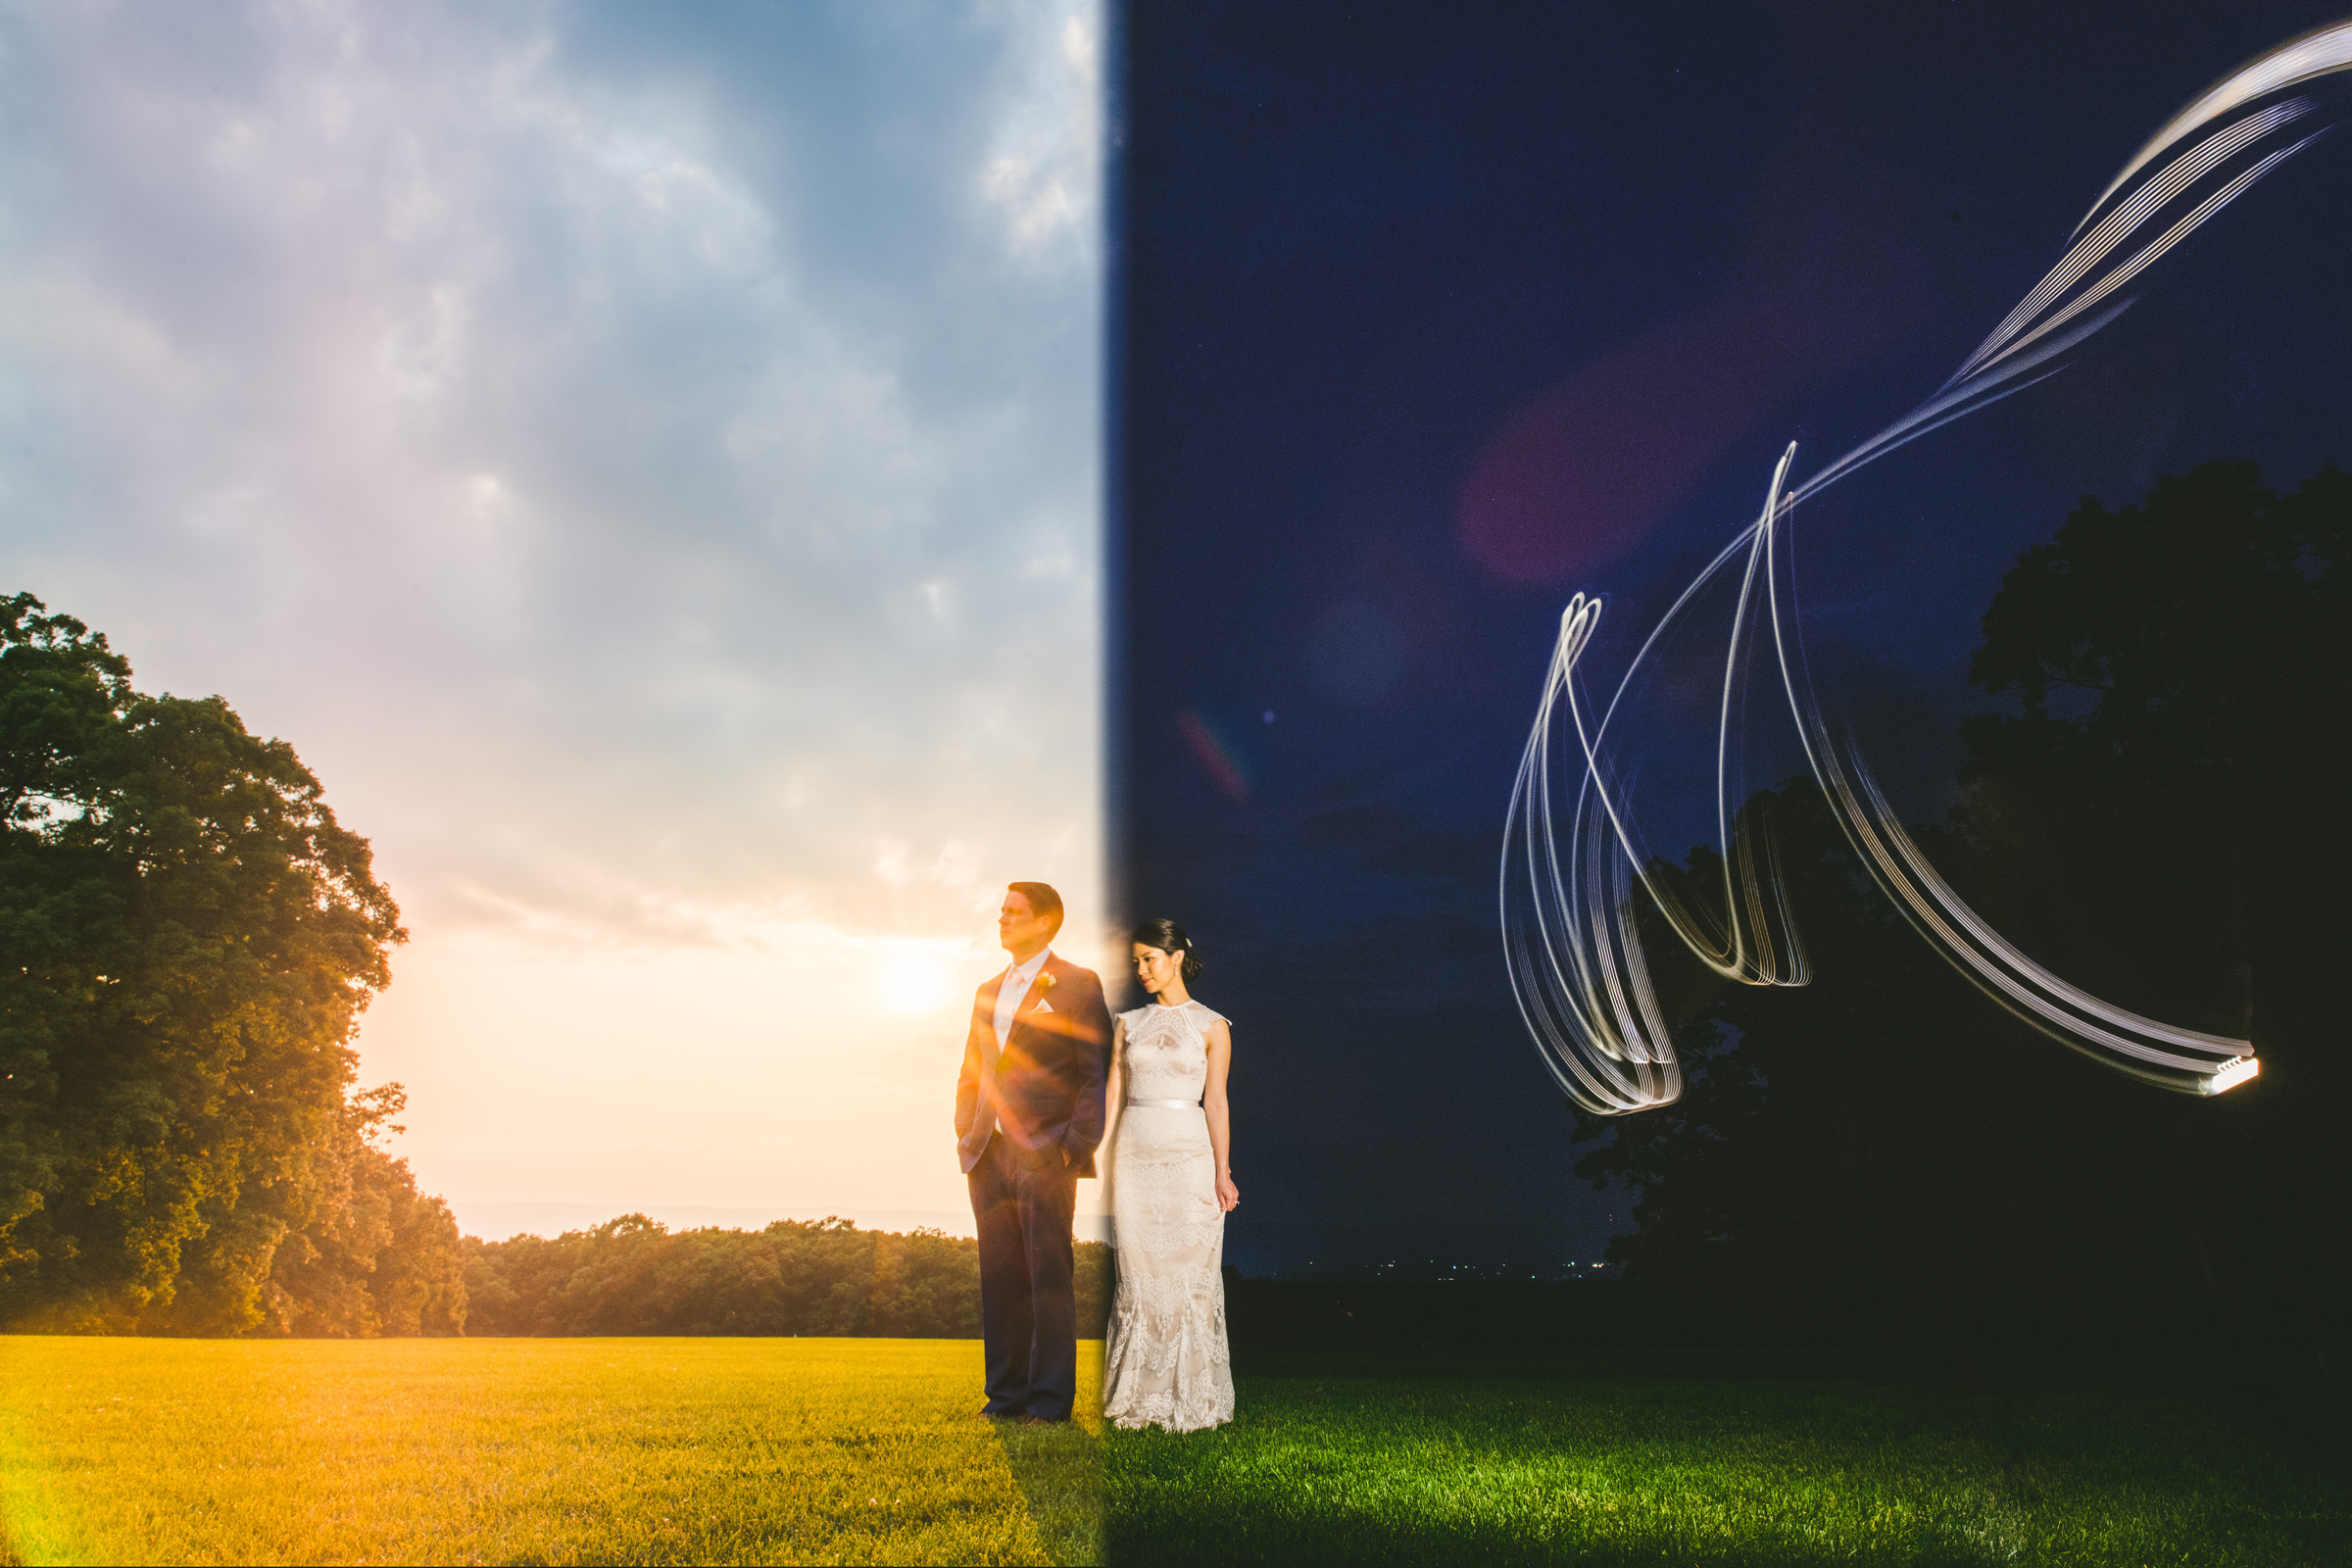 50 Best Wedding Photo Concepts of the Decade - photo by Sam Hurd Photography